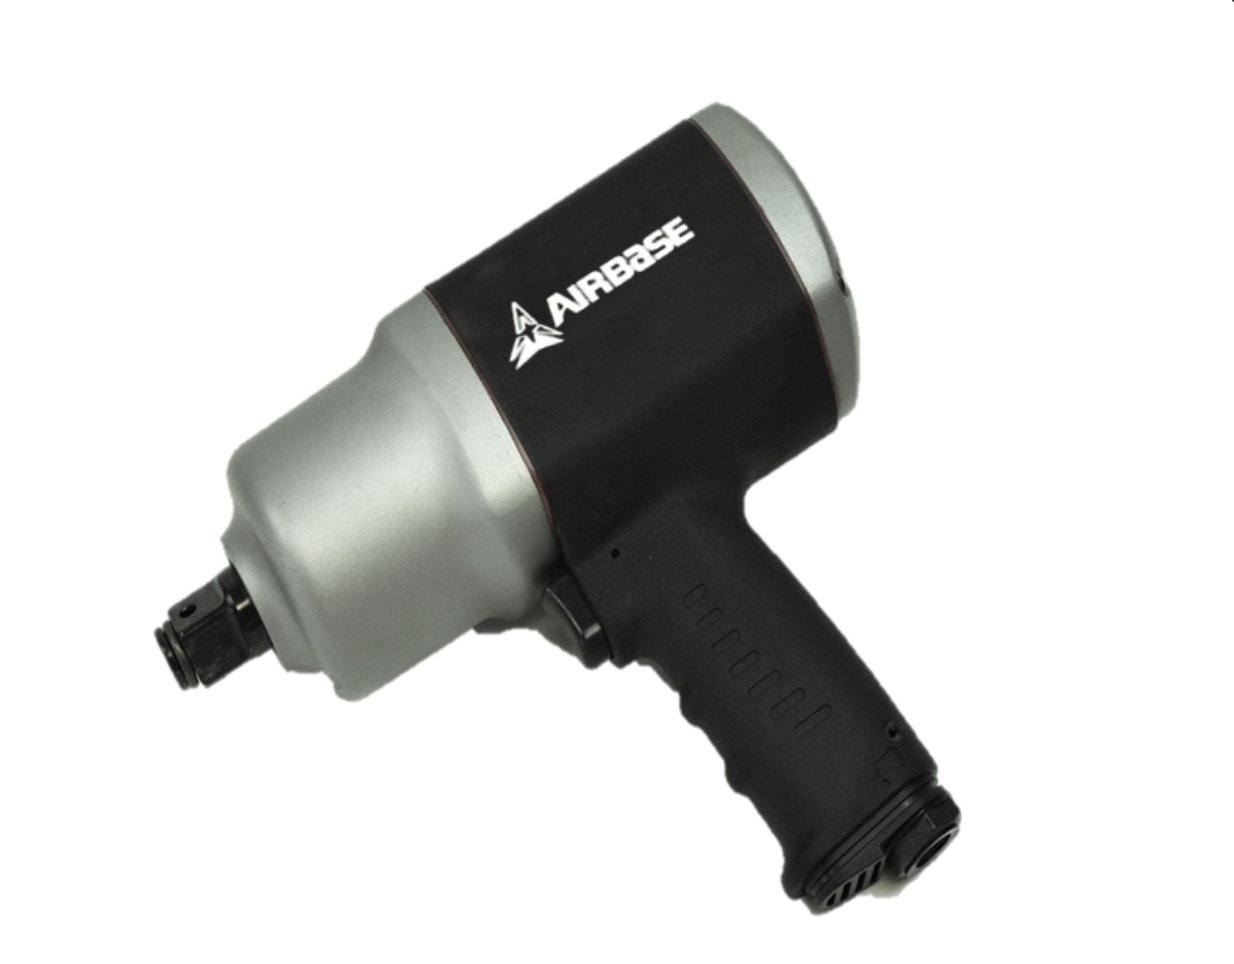 Air Impact Wrench with 1 2 Drive, Industrial Duty, Composite, Model EATIWC5S1P by EMAX Compressor